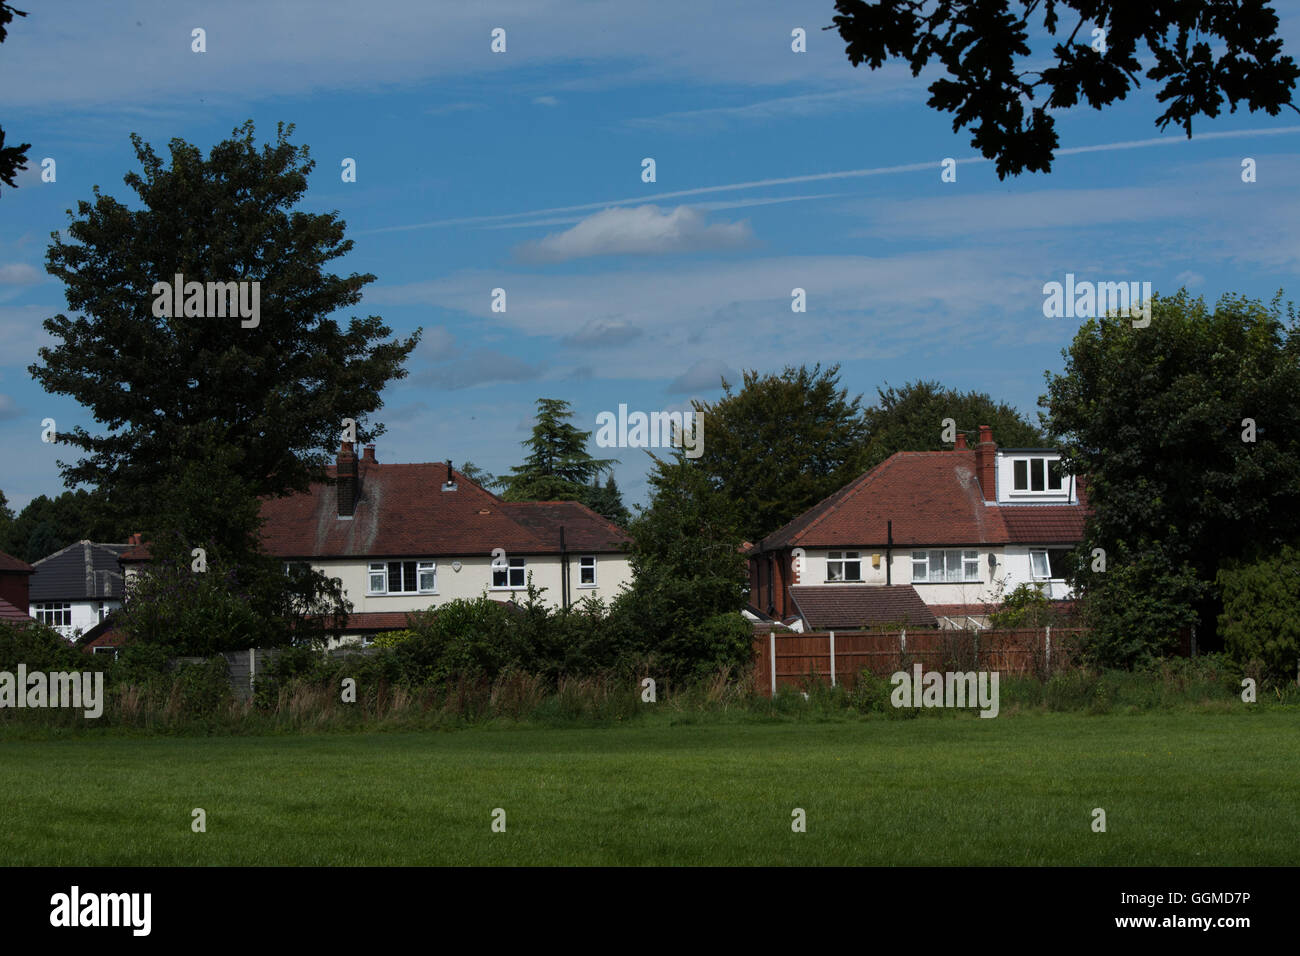 Timperley Stock Photos & Timperley Stock Images - Alamy